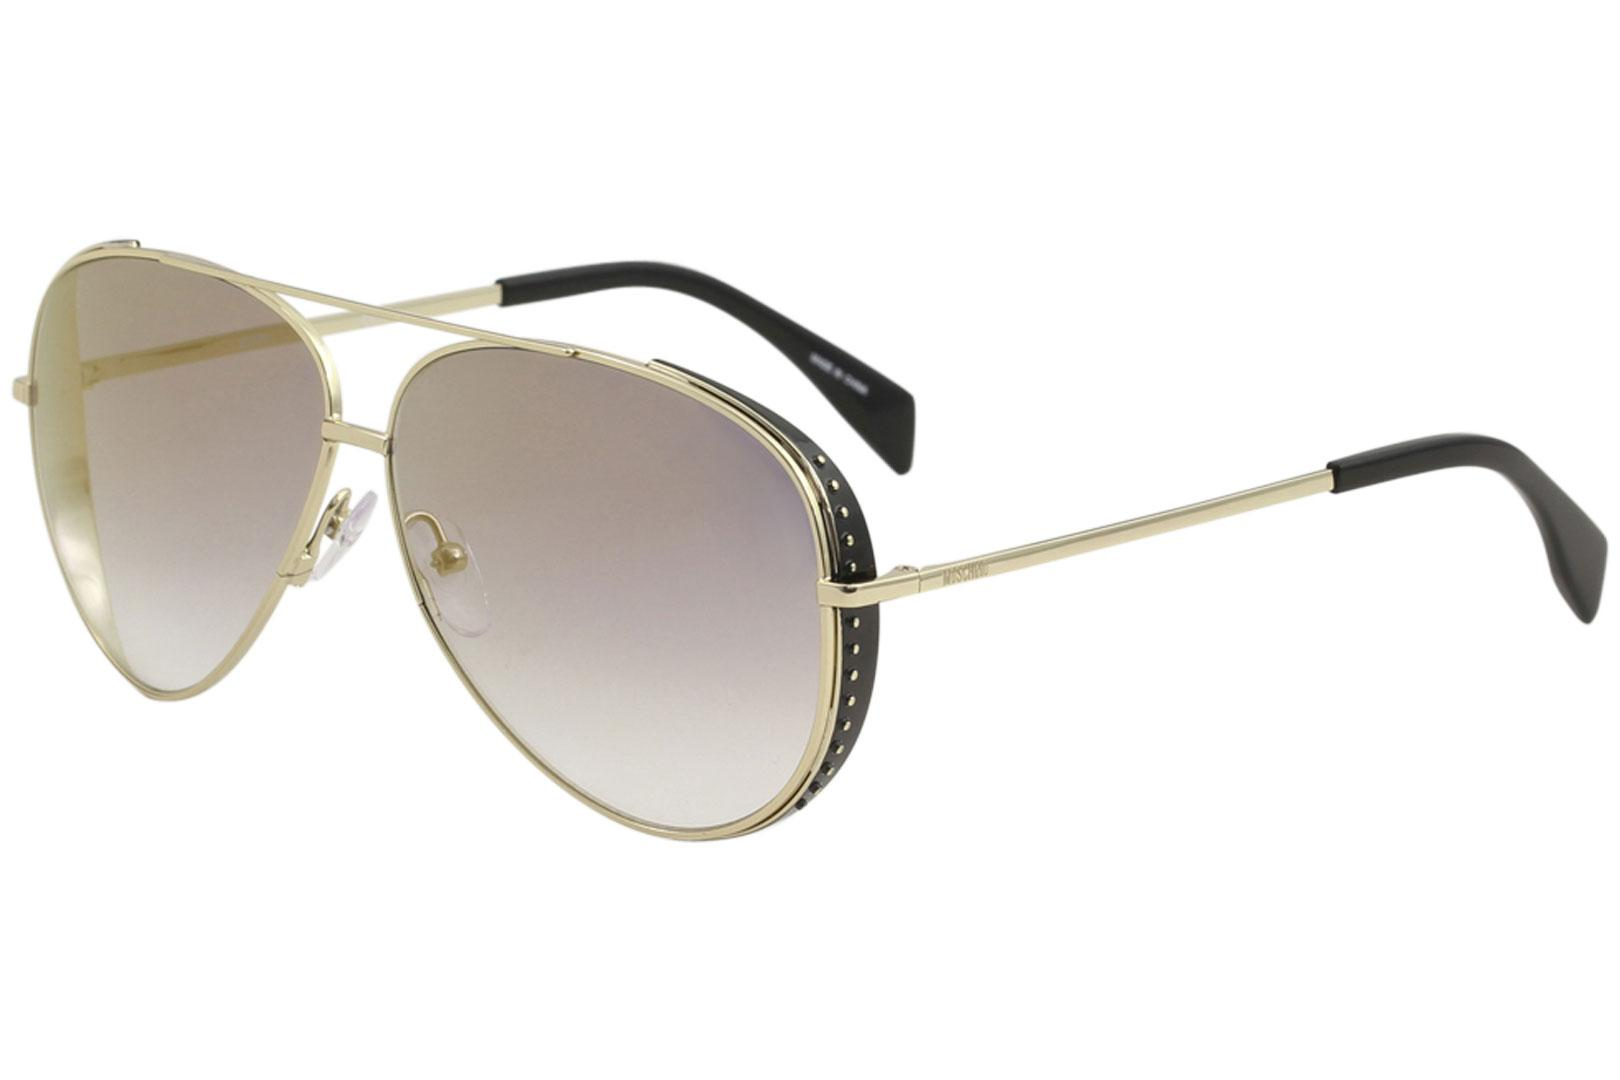 Image of Moschino Women's MOS007/S MOS/007/S Fashion Pilot Sunglasses - Gold/Grey Gradient Gold Mirror   J5GFQ - Lens 61 Bridge 10 B53 ED 68 Temple 140mm